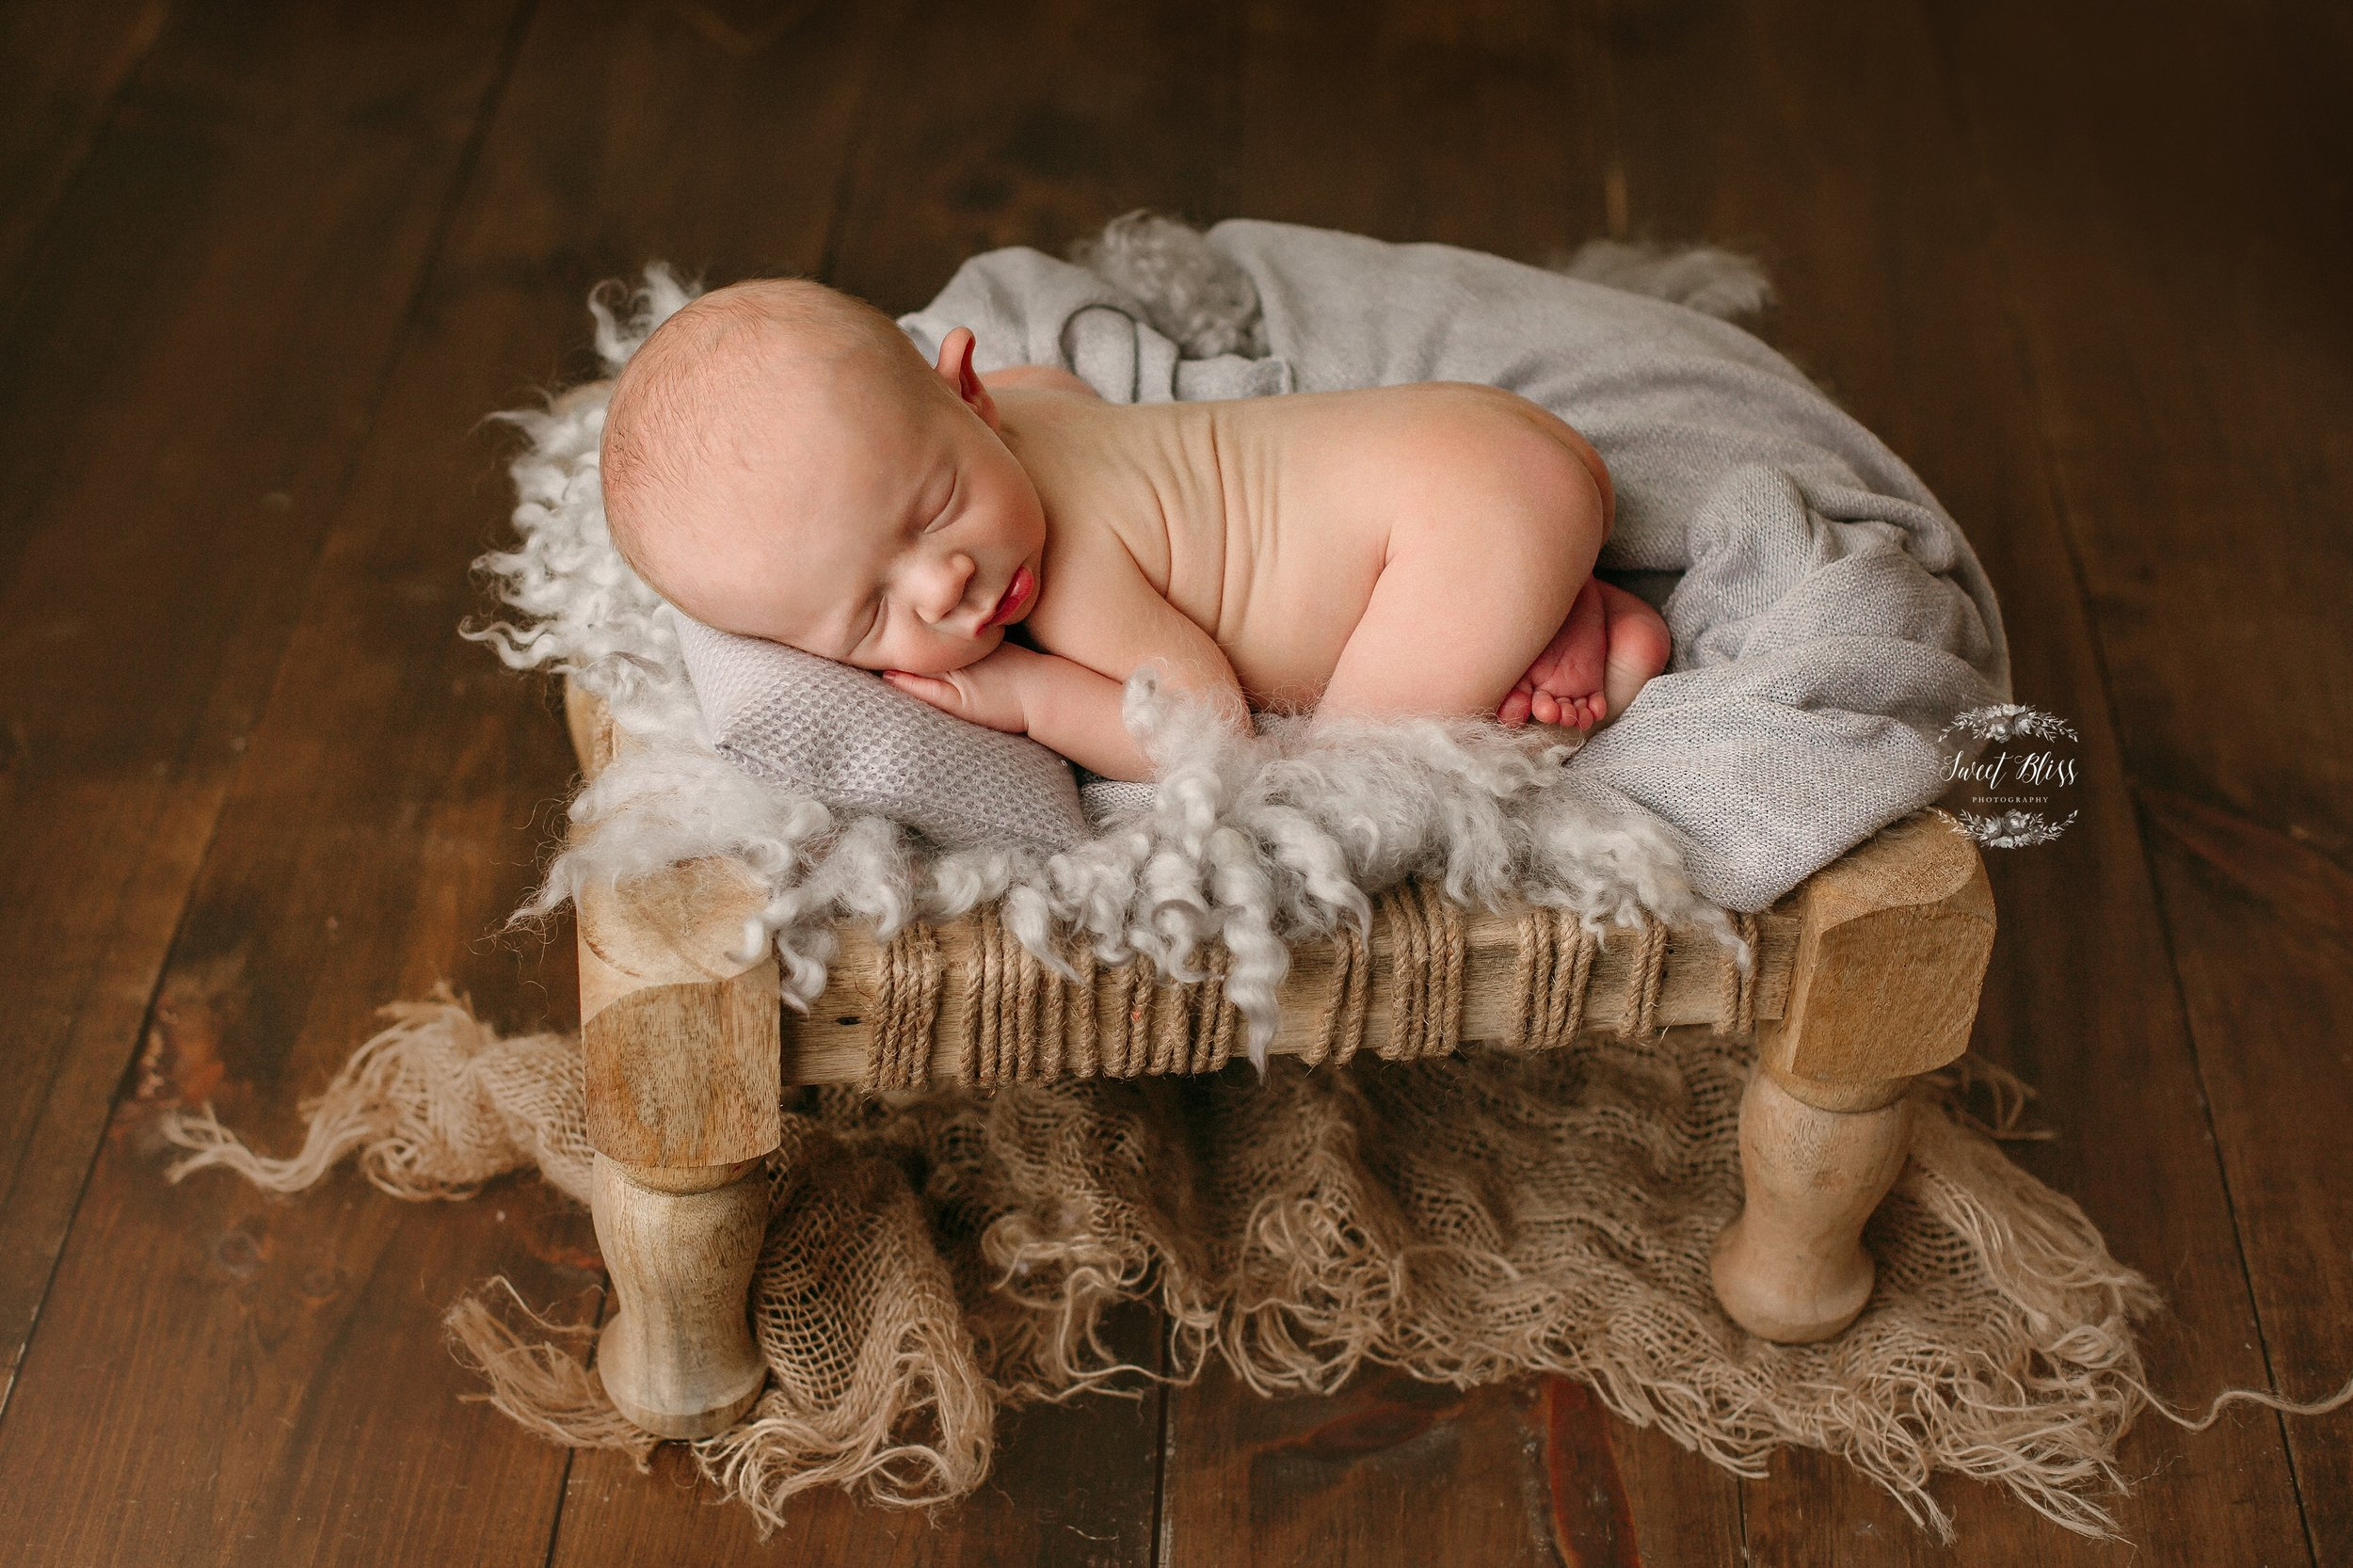 newbornphotography_sweetblissphoto_Baltimorebabyportraitinmaryland-11.jpg